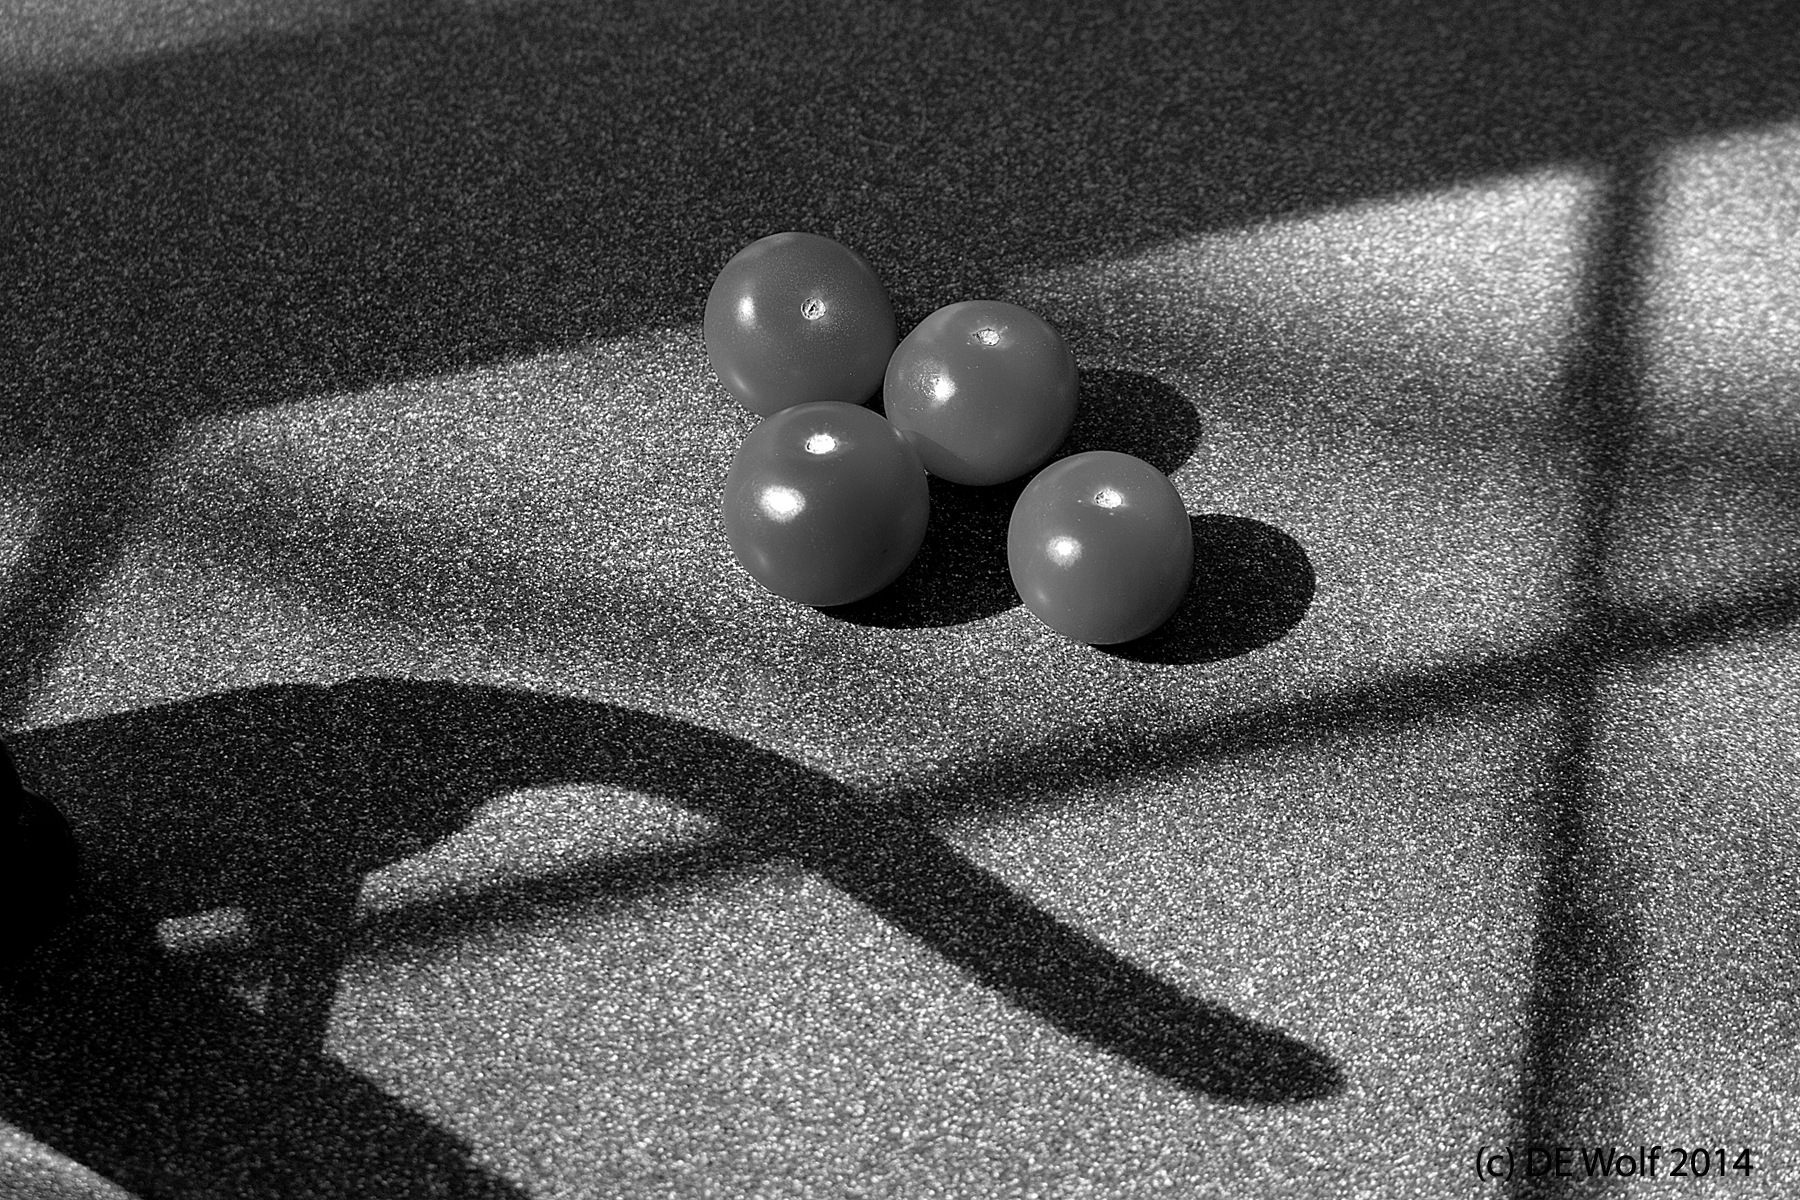 Figure 2 - Long Shadows with Tomatoes, (c) DE Wolf 2014.